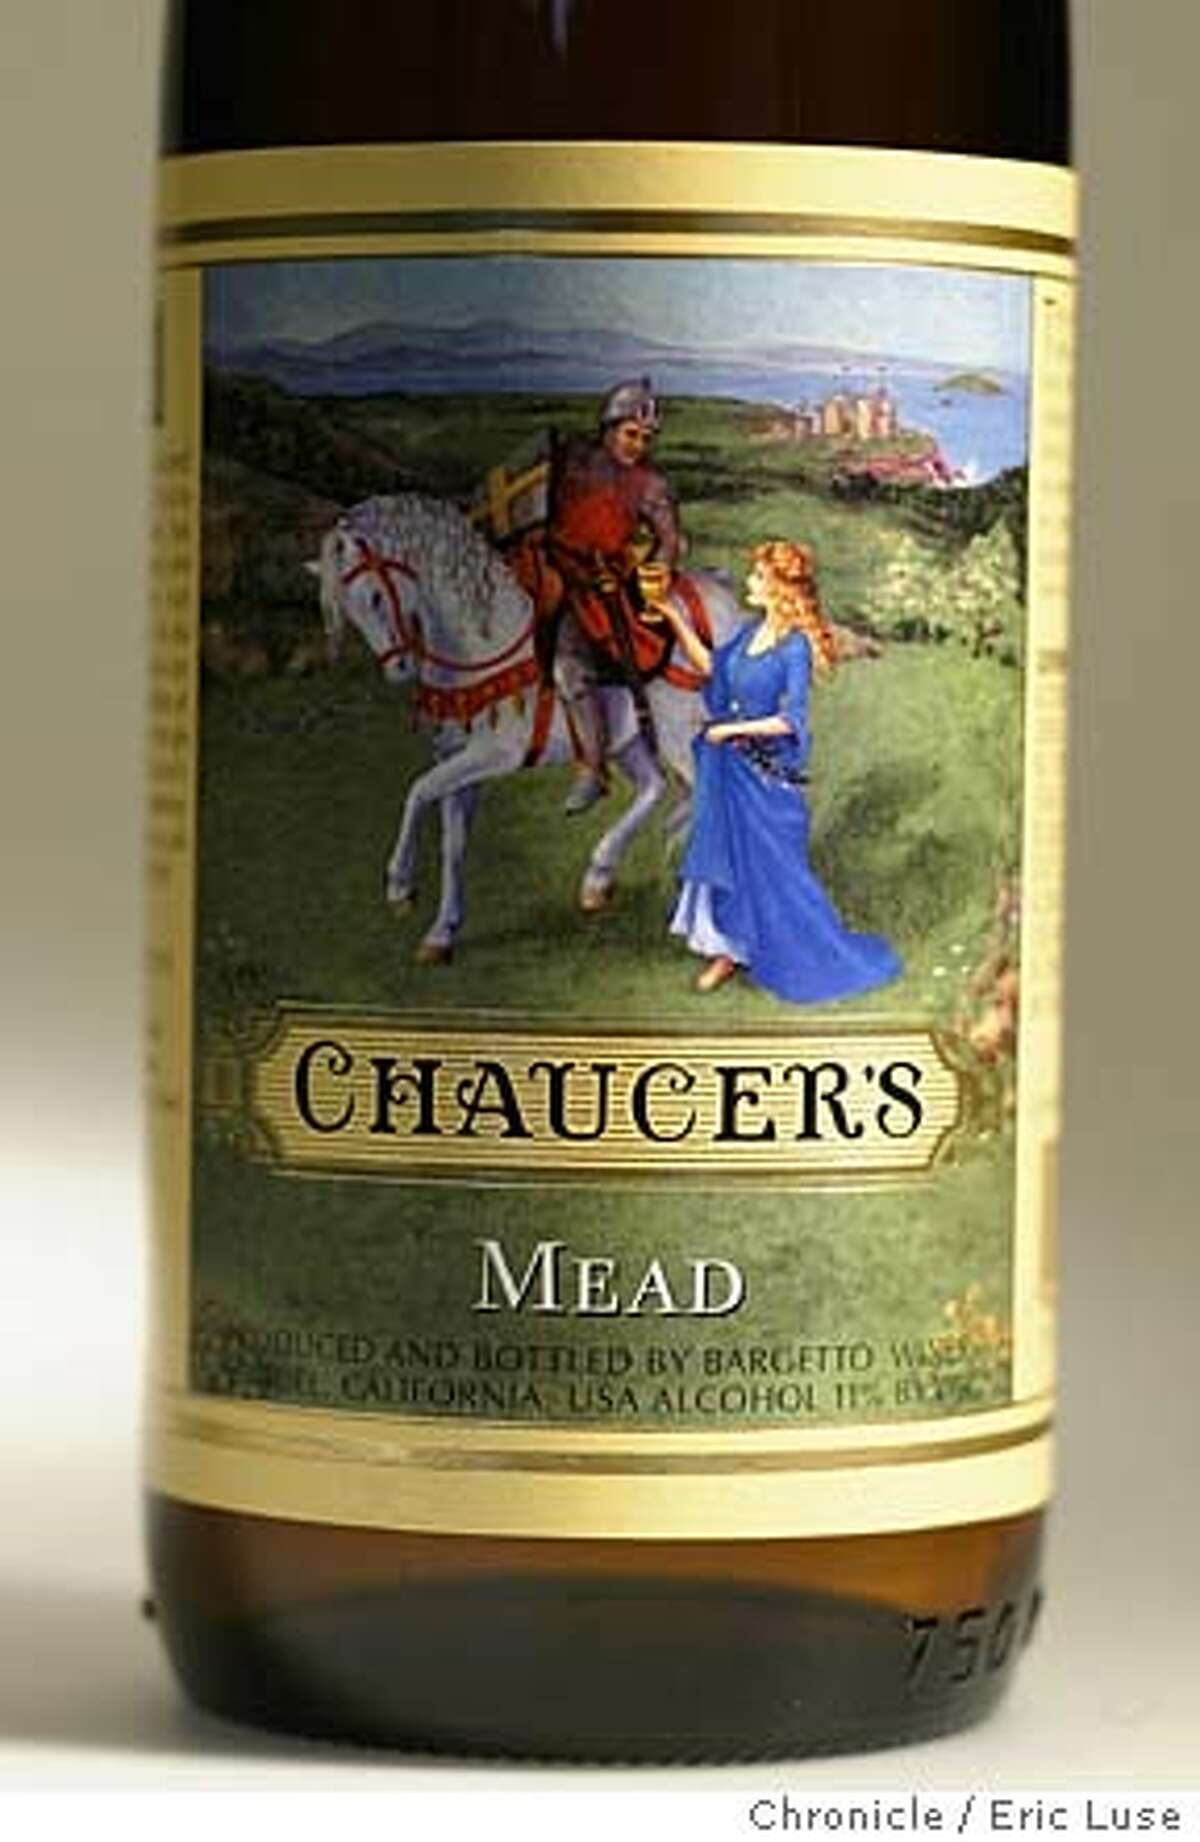 Chaucer's Mead by Bargetto Winery, Santa Cruz, CA Eric Luse / The Chronicle